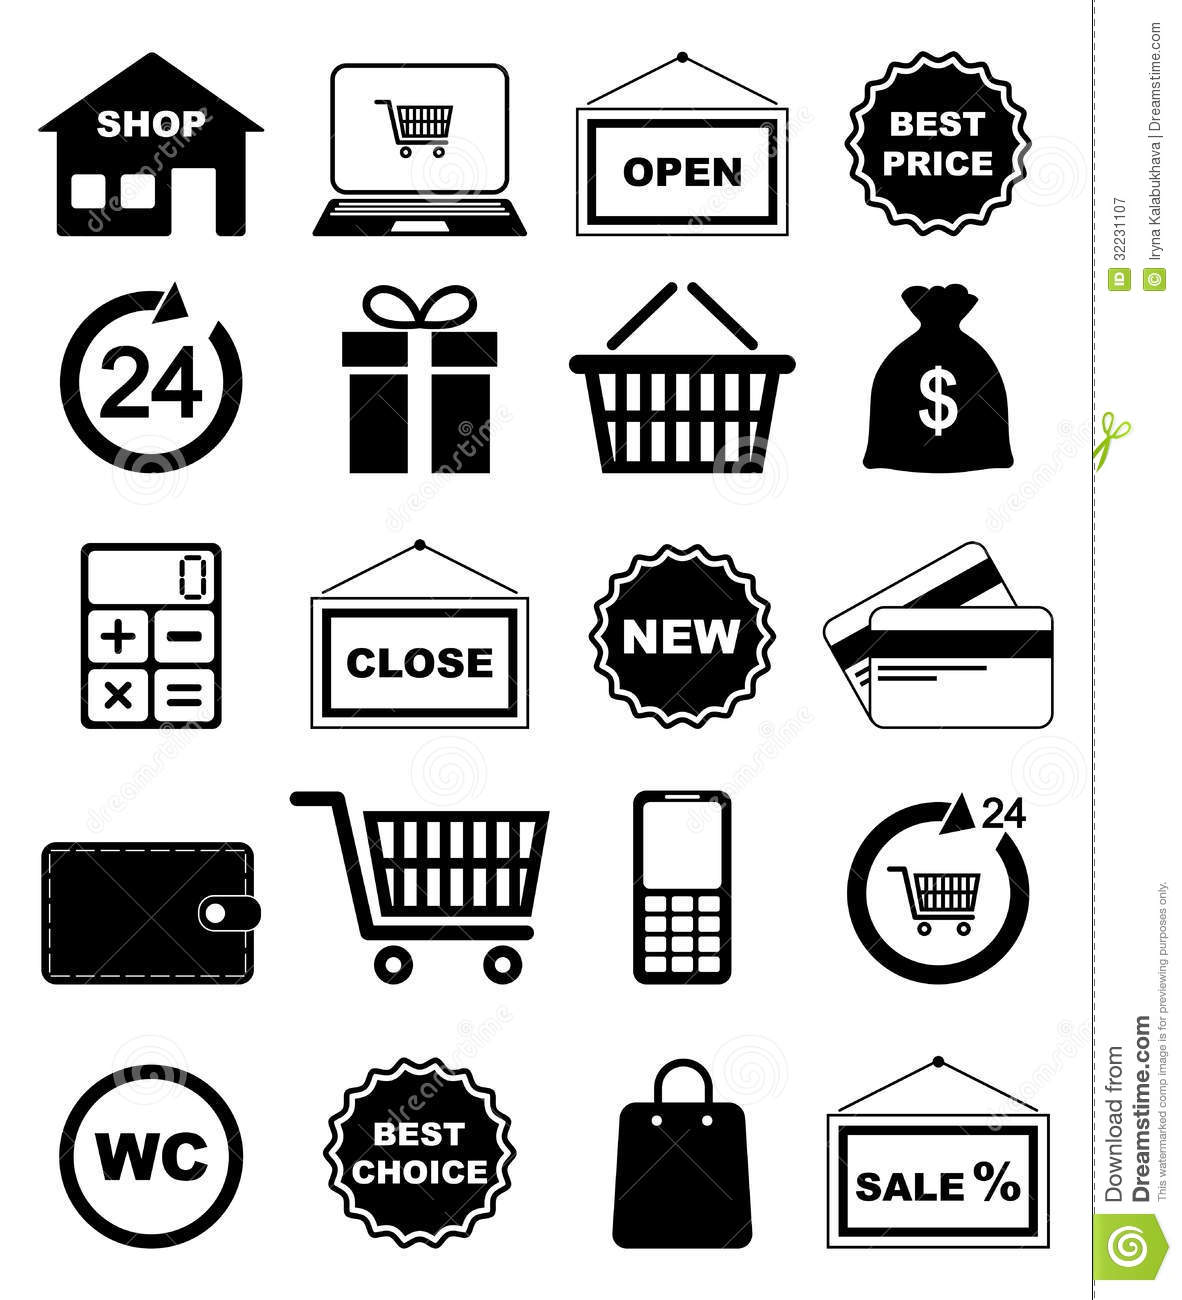 Shopping Icons Royalty Free Stock Photography - Image: 32231107: www.dreamstime.com/royalty-free-stock-photography-shopping-icons...